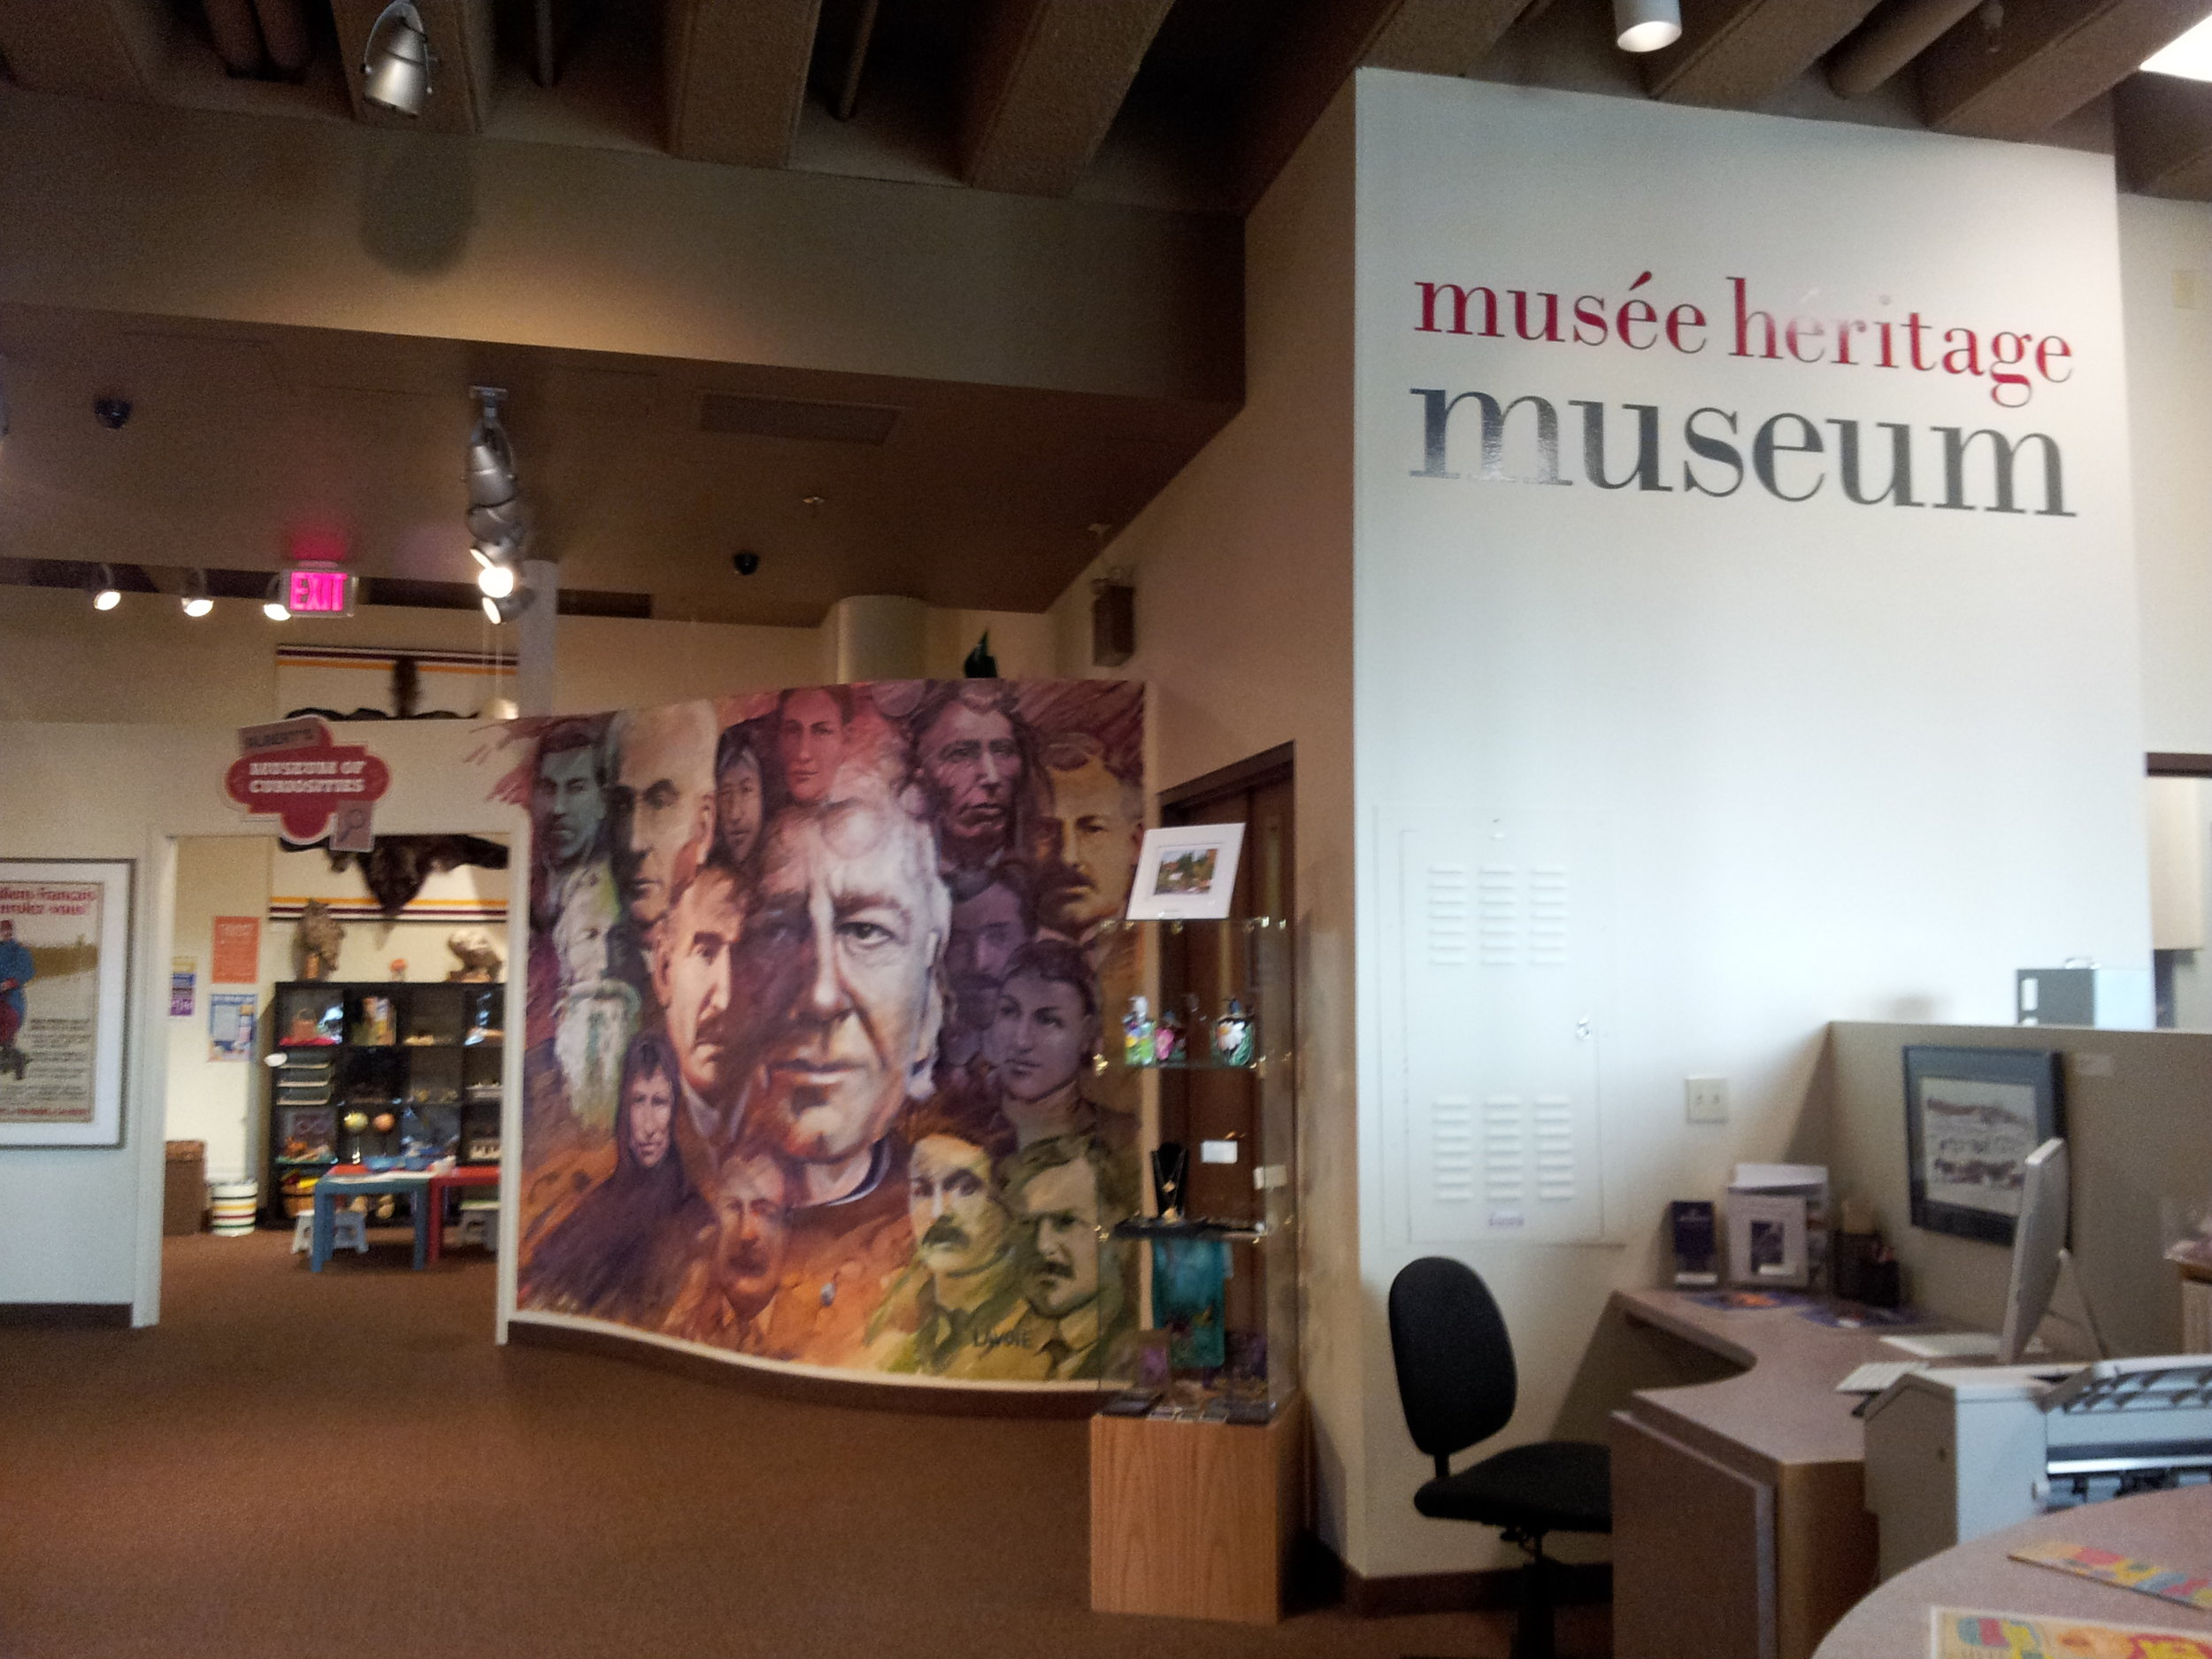 Musée Héritage Museum's Discovery Room and Research Desk!